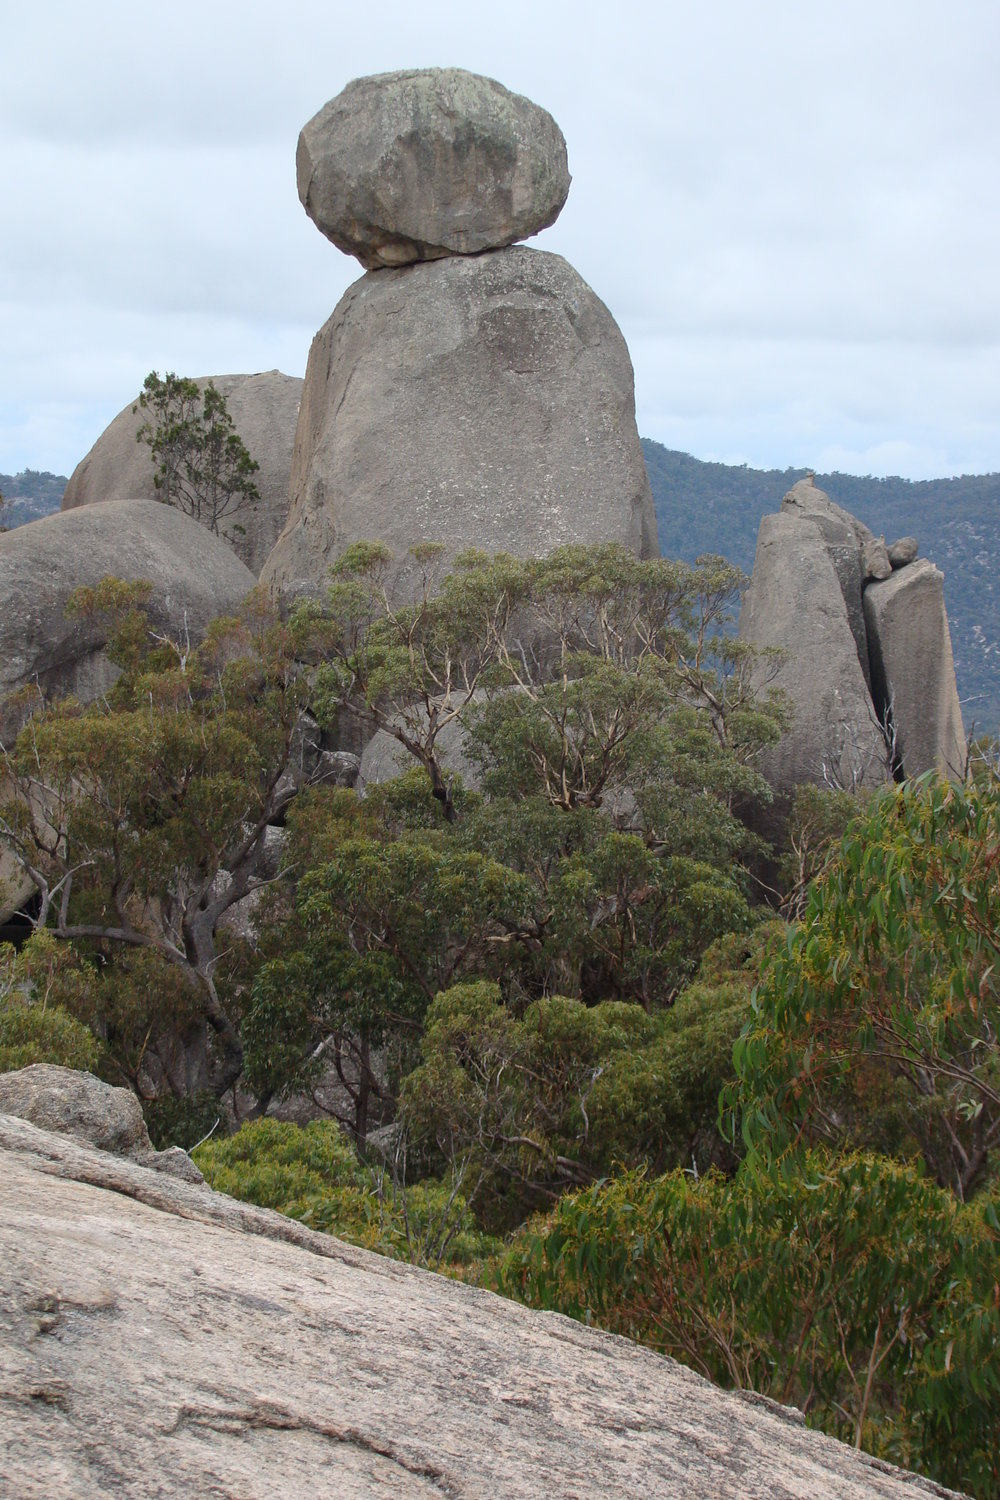 Girraween National Park, one of the parks established through the efforts of NPAQ members.